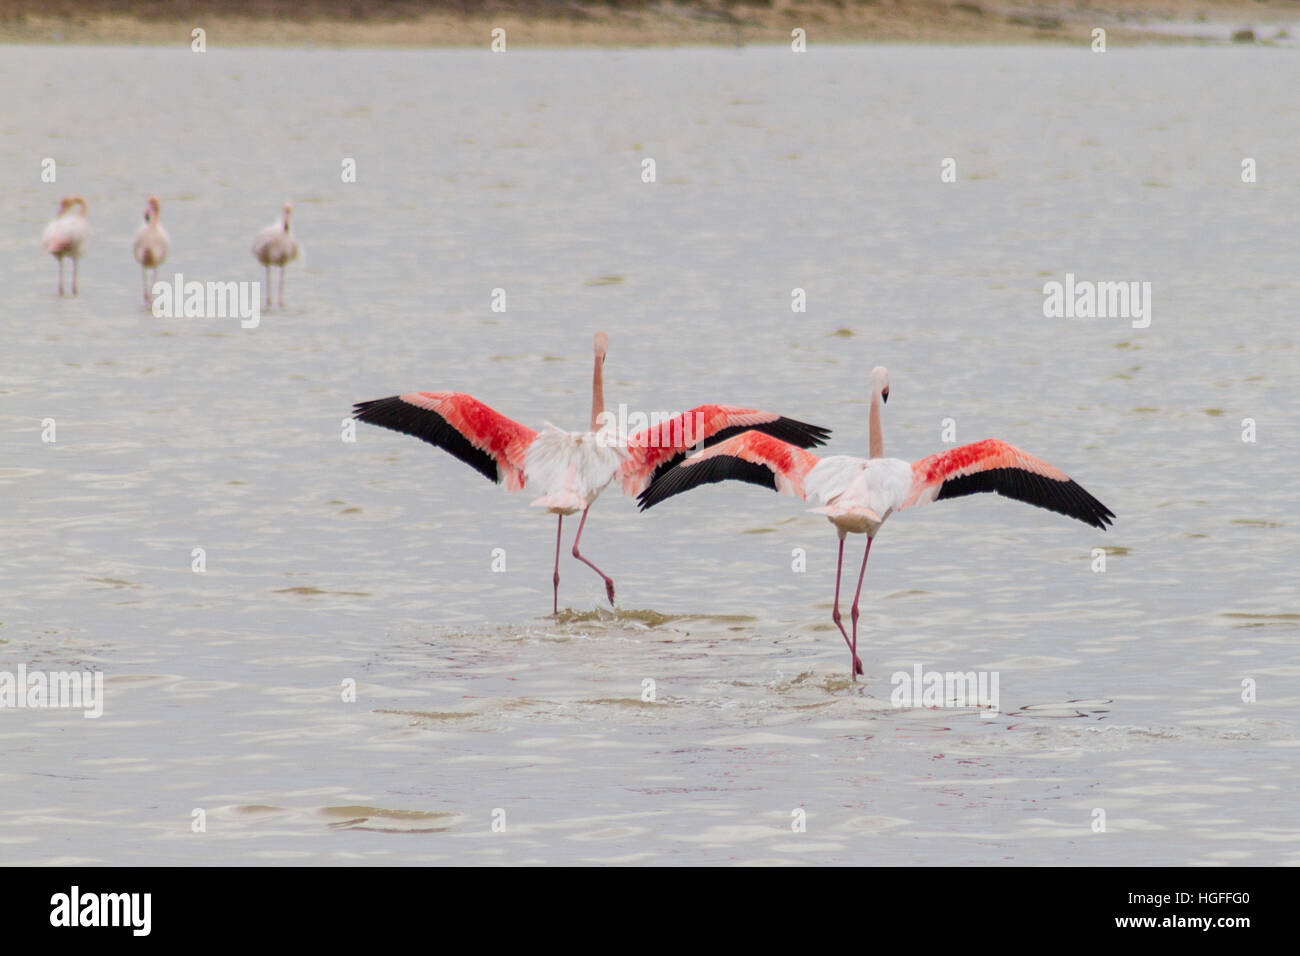 Two flamingos taking off at Larnaca Salt-lake in the island of Cyprus on a winter morning Stock Photo